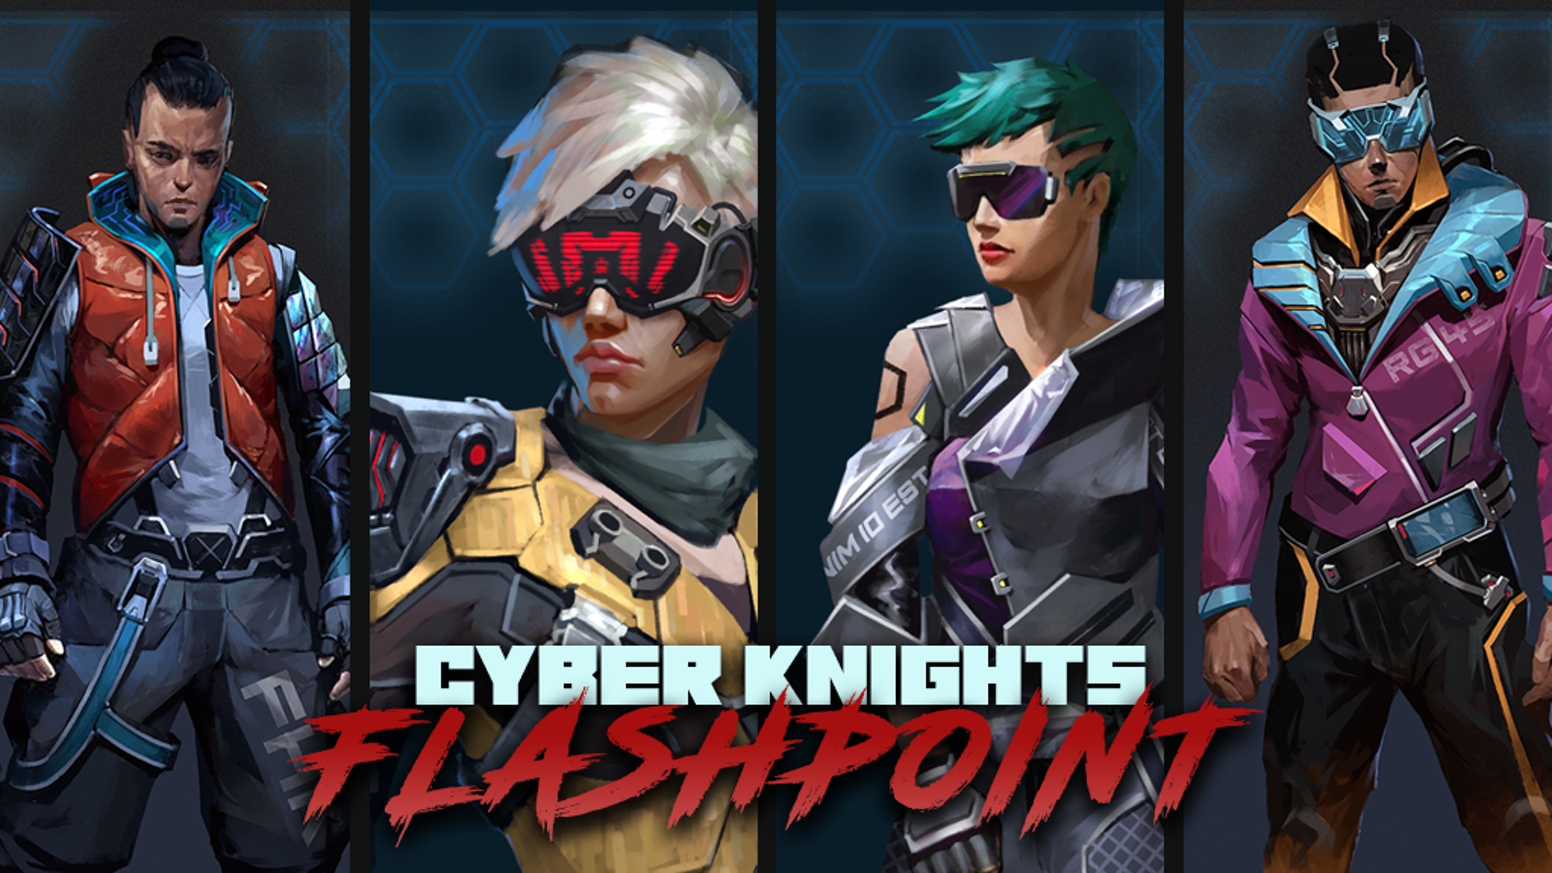 Cyber Knights is a tactical RPG that plunges you and your team of hackers, mercs and thieves into the neon-soaked future of 2231.